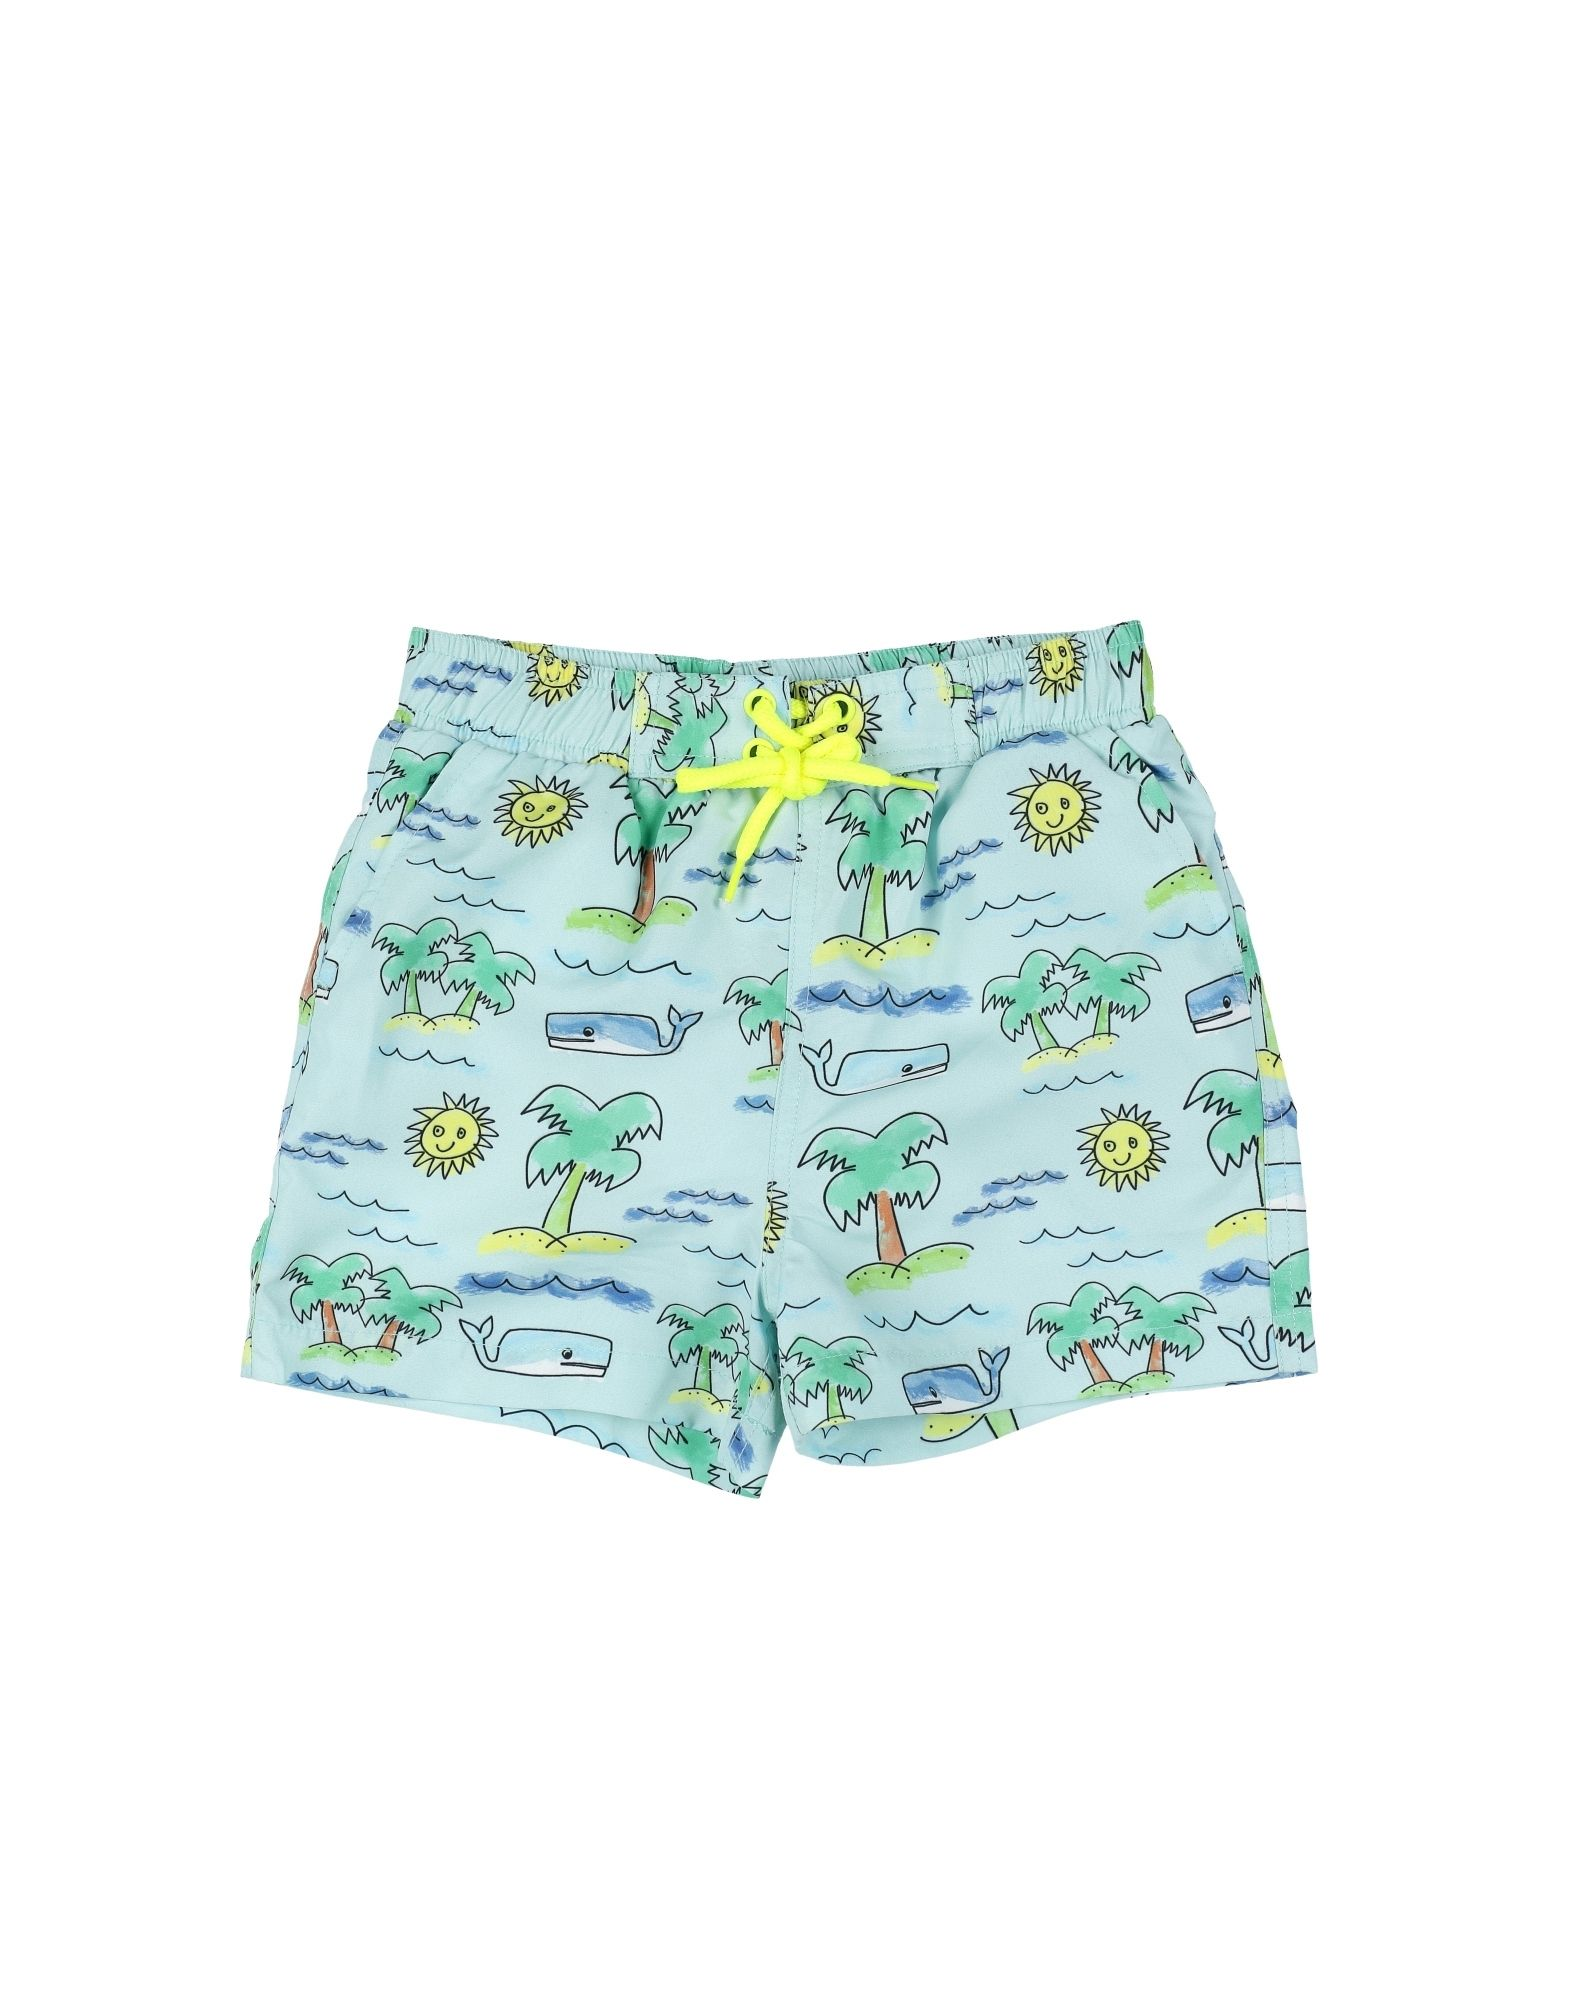 STELLA McCARTNEY KIDS Swim trunks